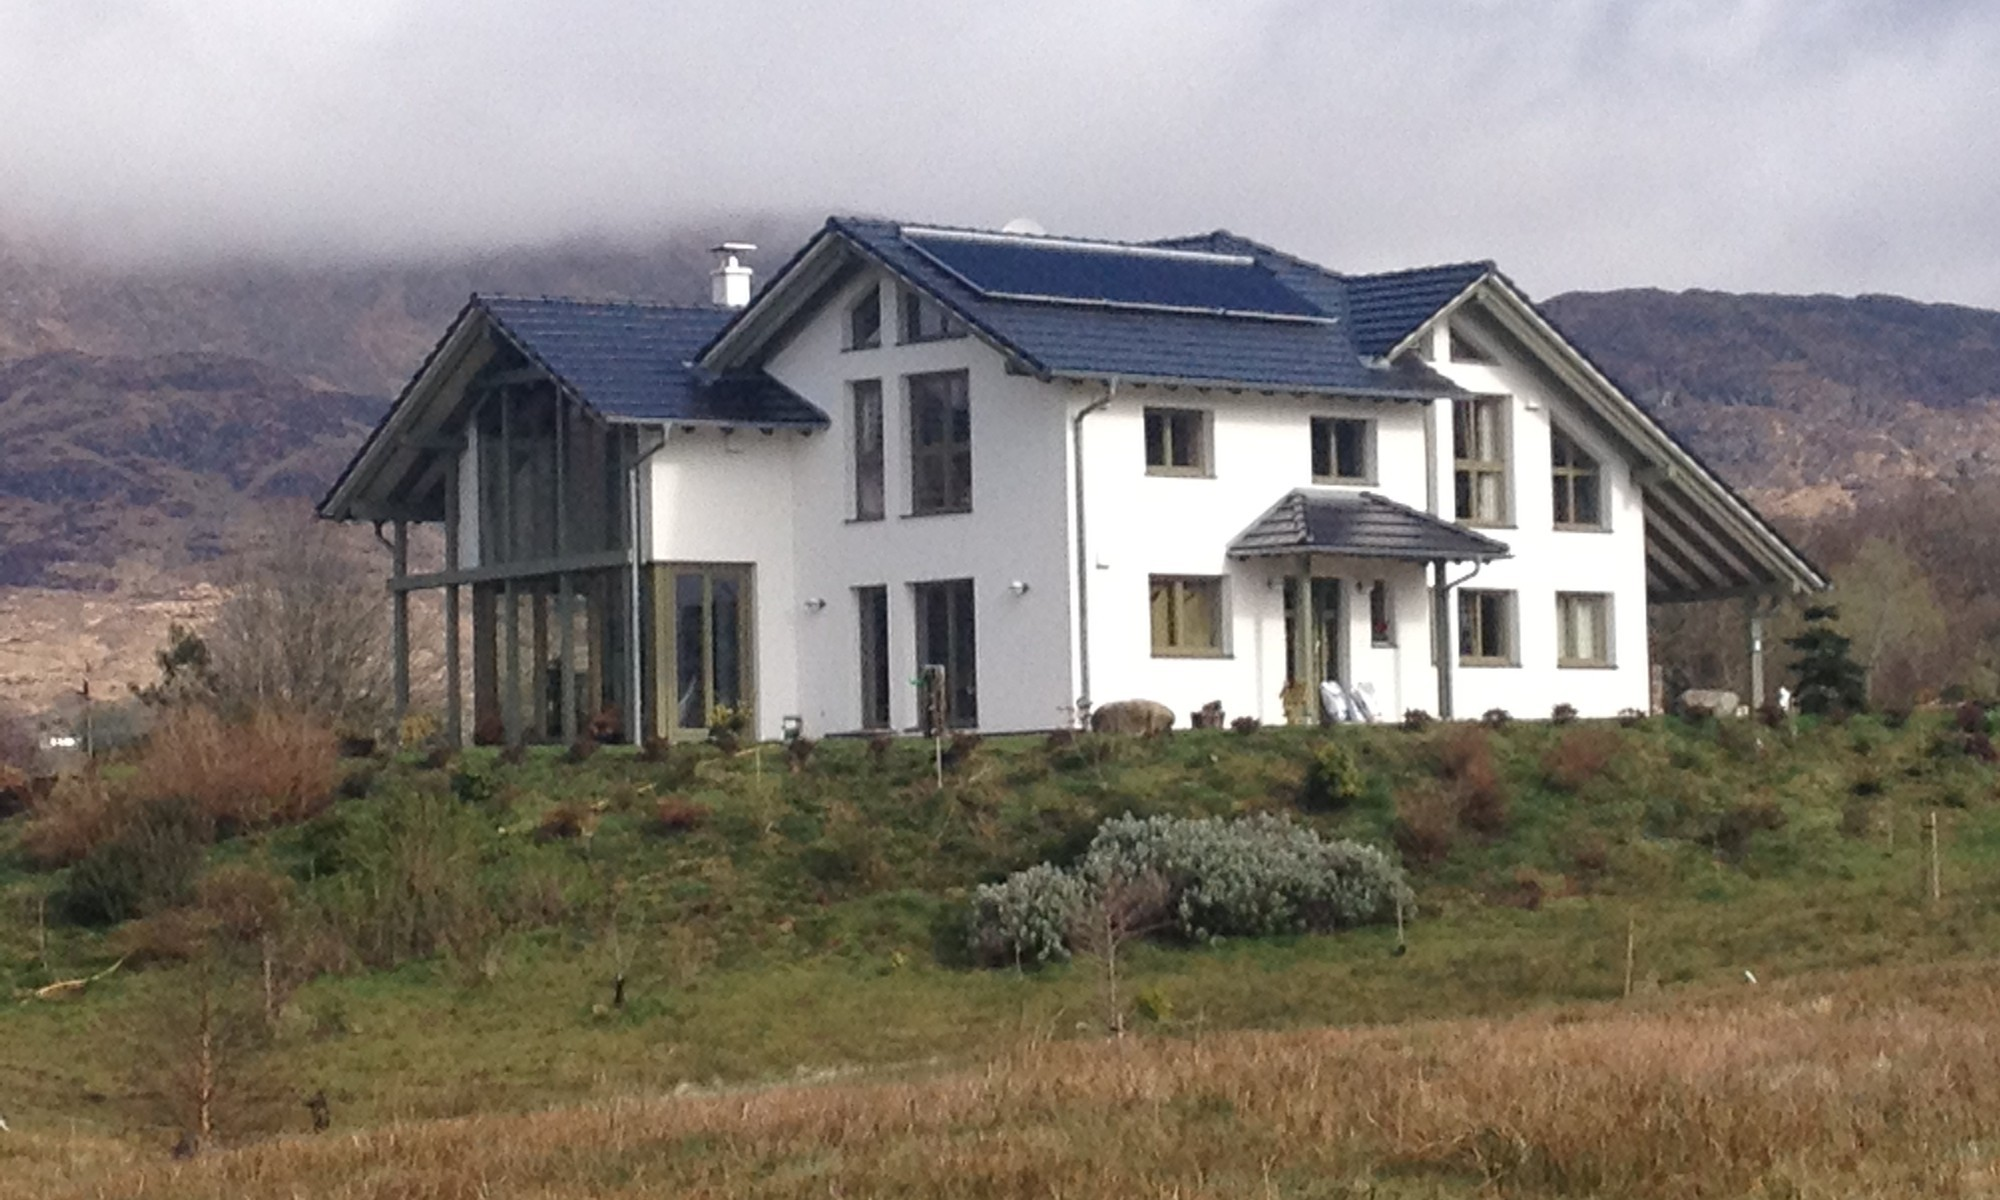 Luxurious, eco-friendly prefab home in rural Ireland, with large solar heating system